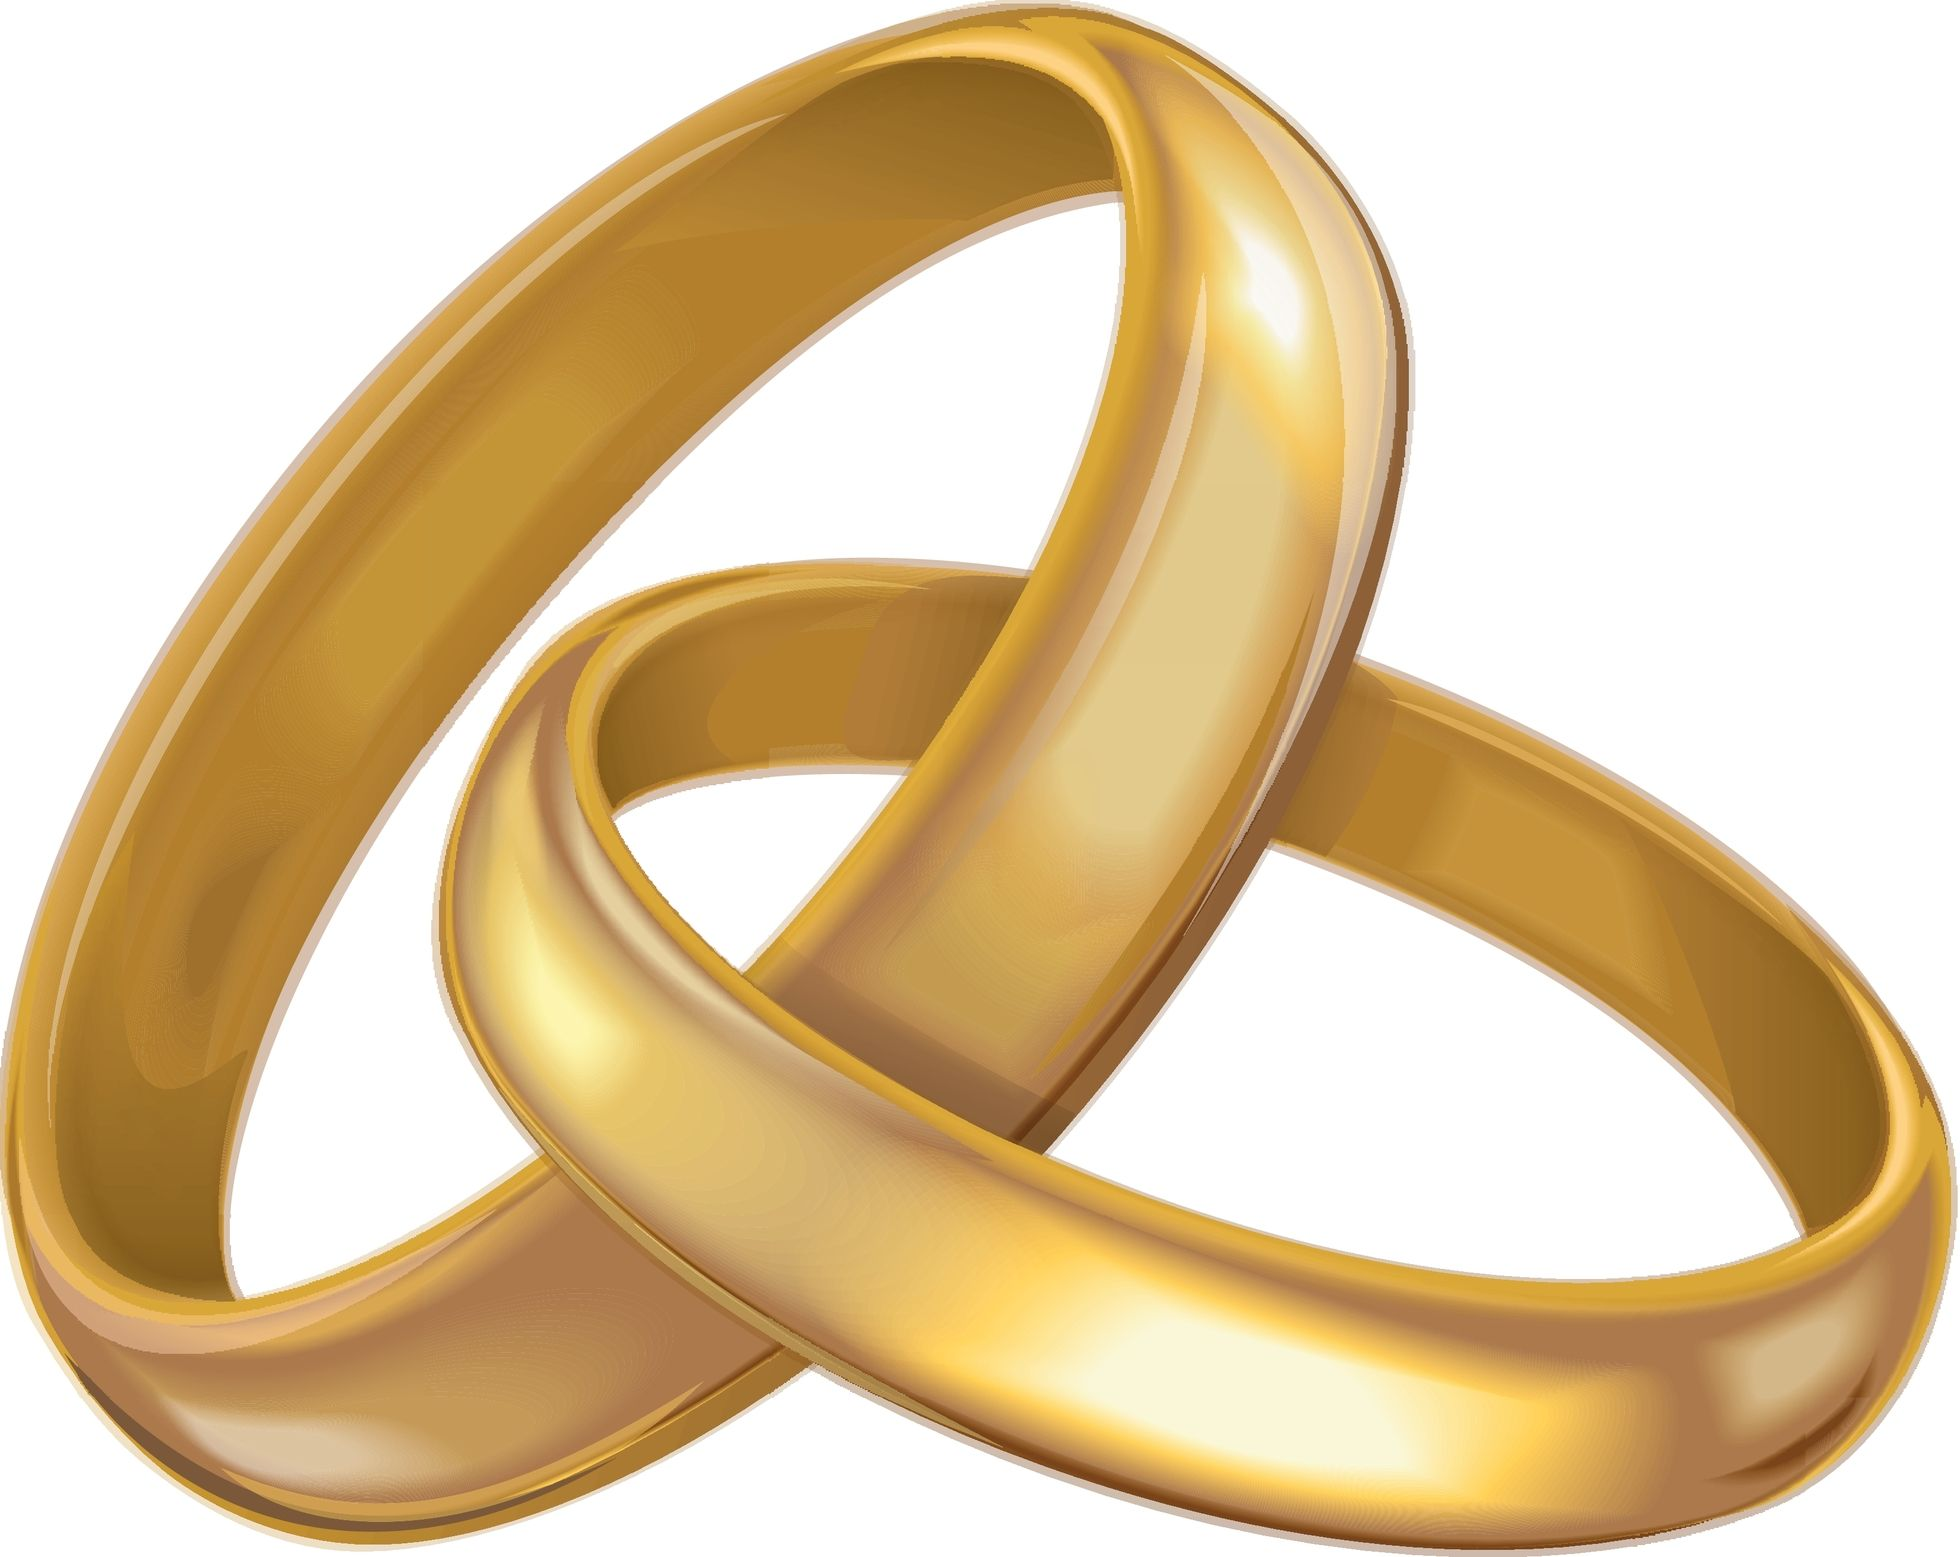 Rings clipart. Wedding the cliparts pinterest